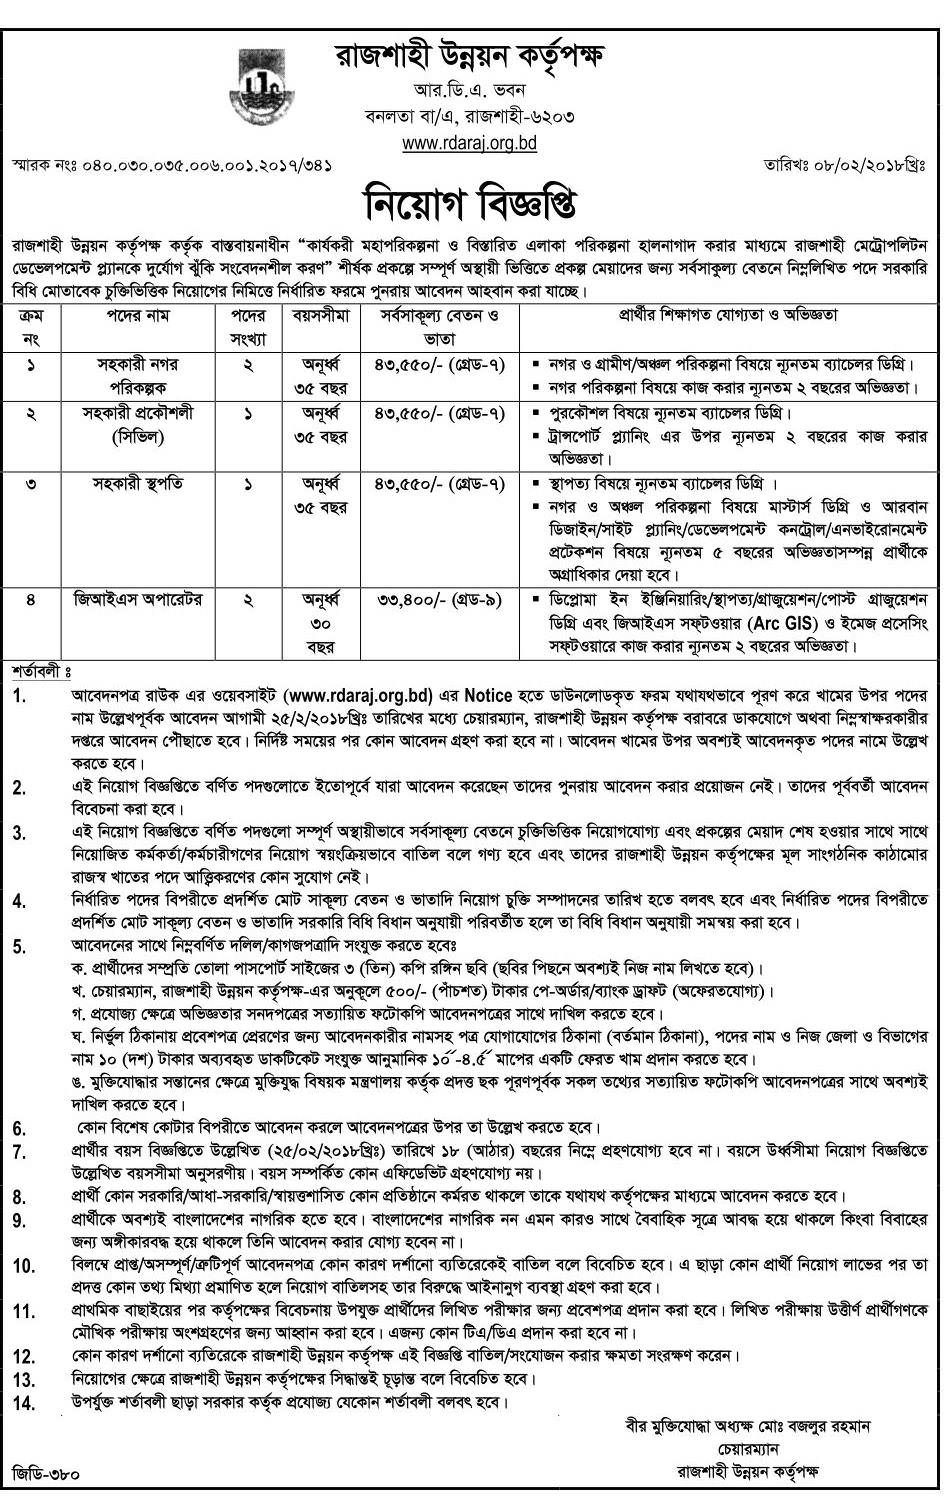 Rajshahi Development Authority RDA Job Circular 2018